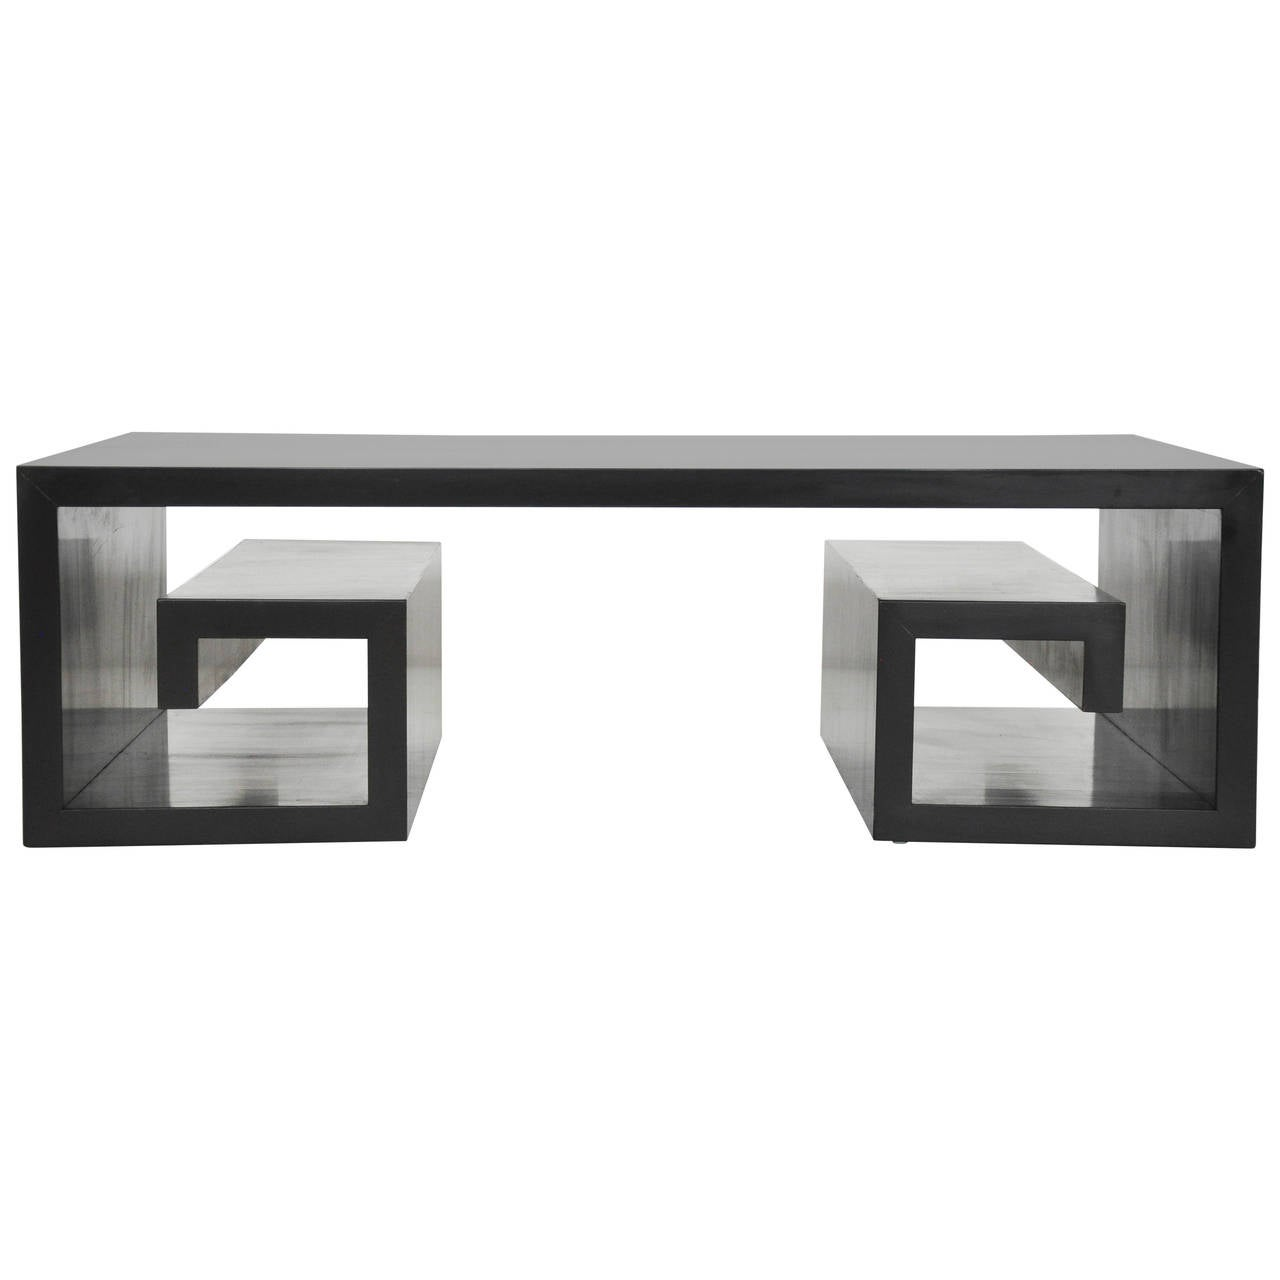 Early paul frankl greek key coffee table for sale at 1stdibs early paul frankl greek key coffee table 1 geotapseo Gallery